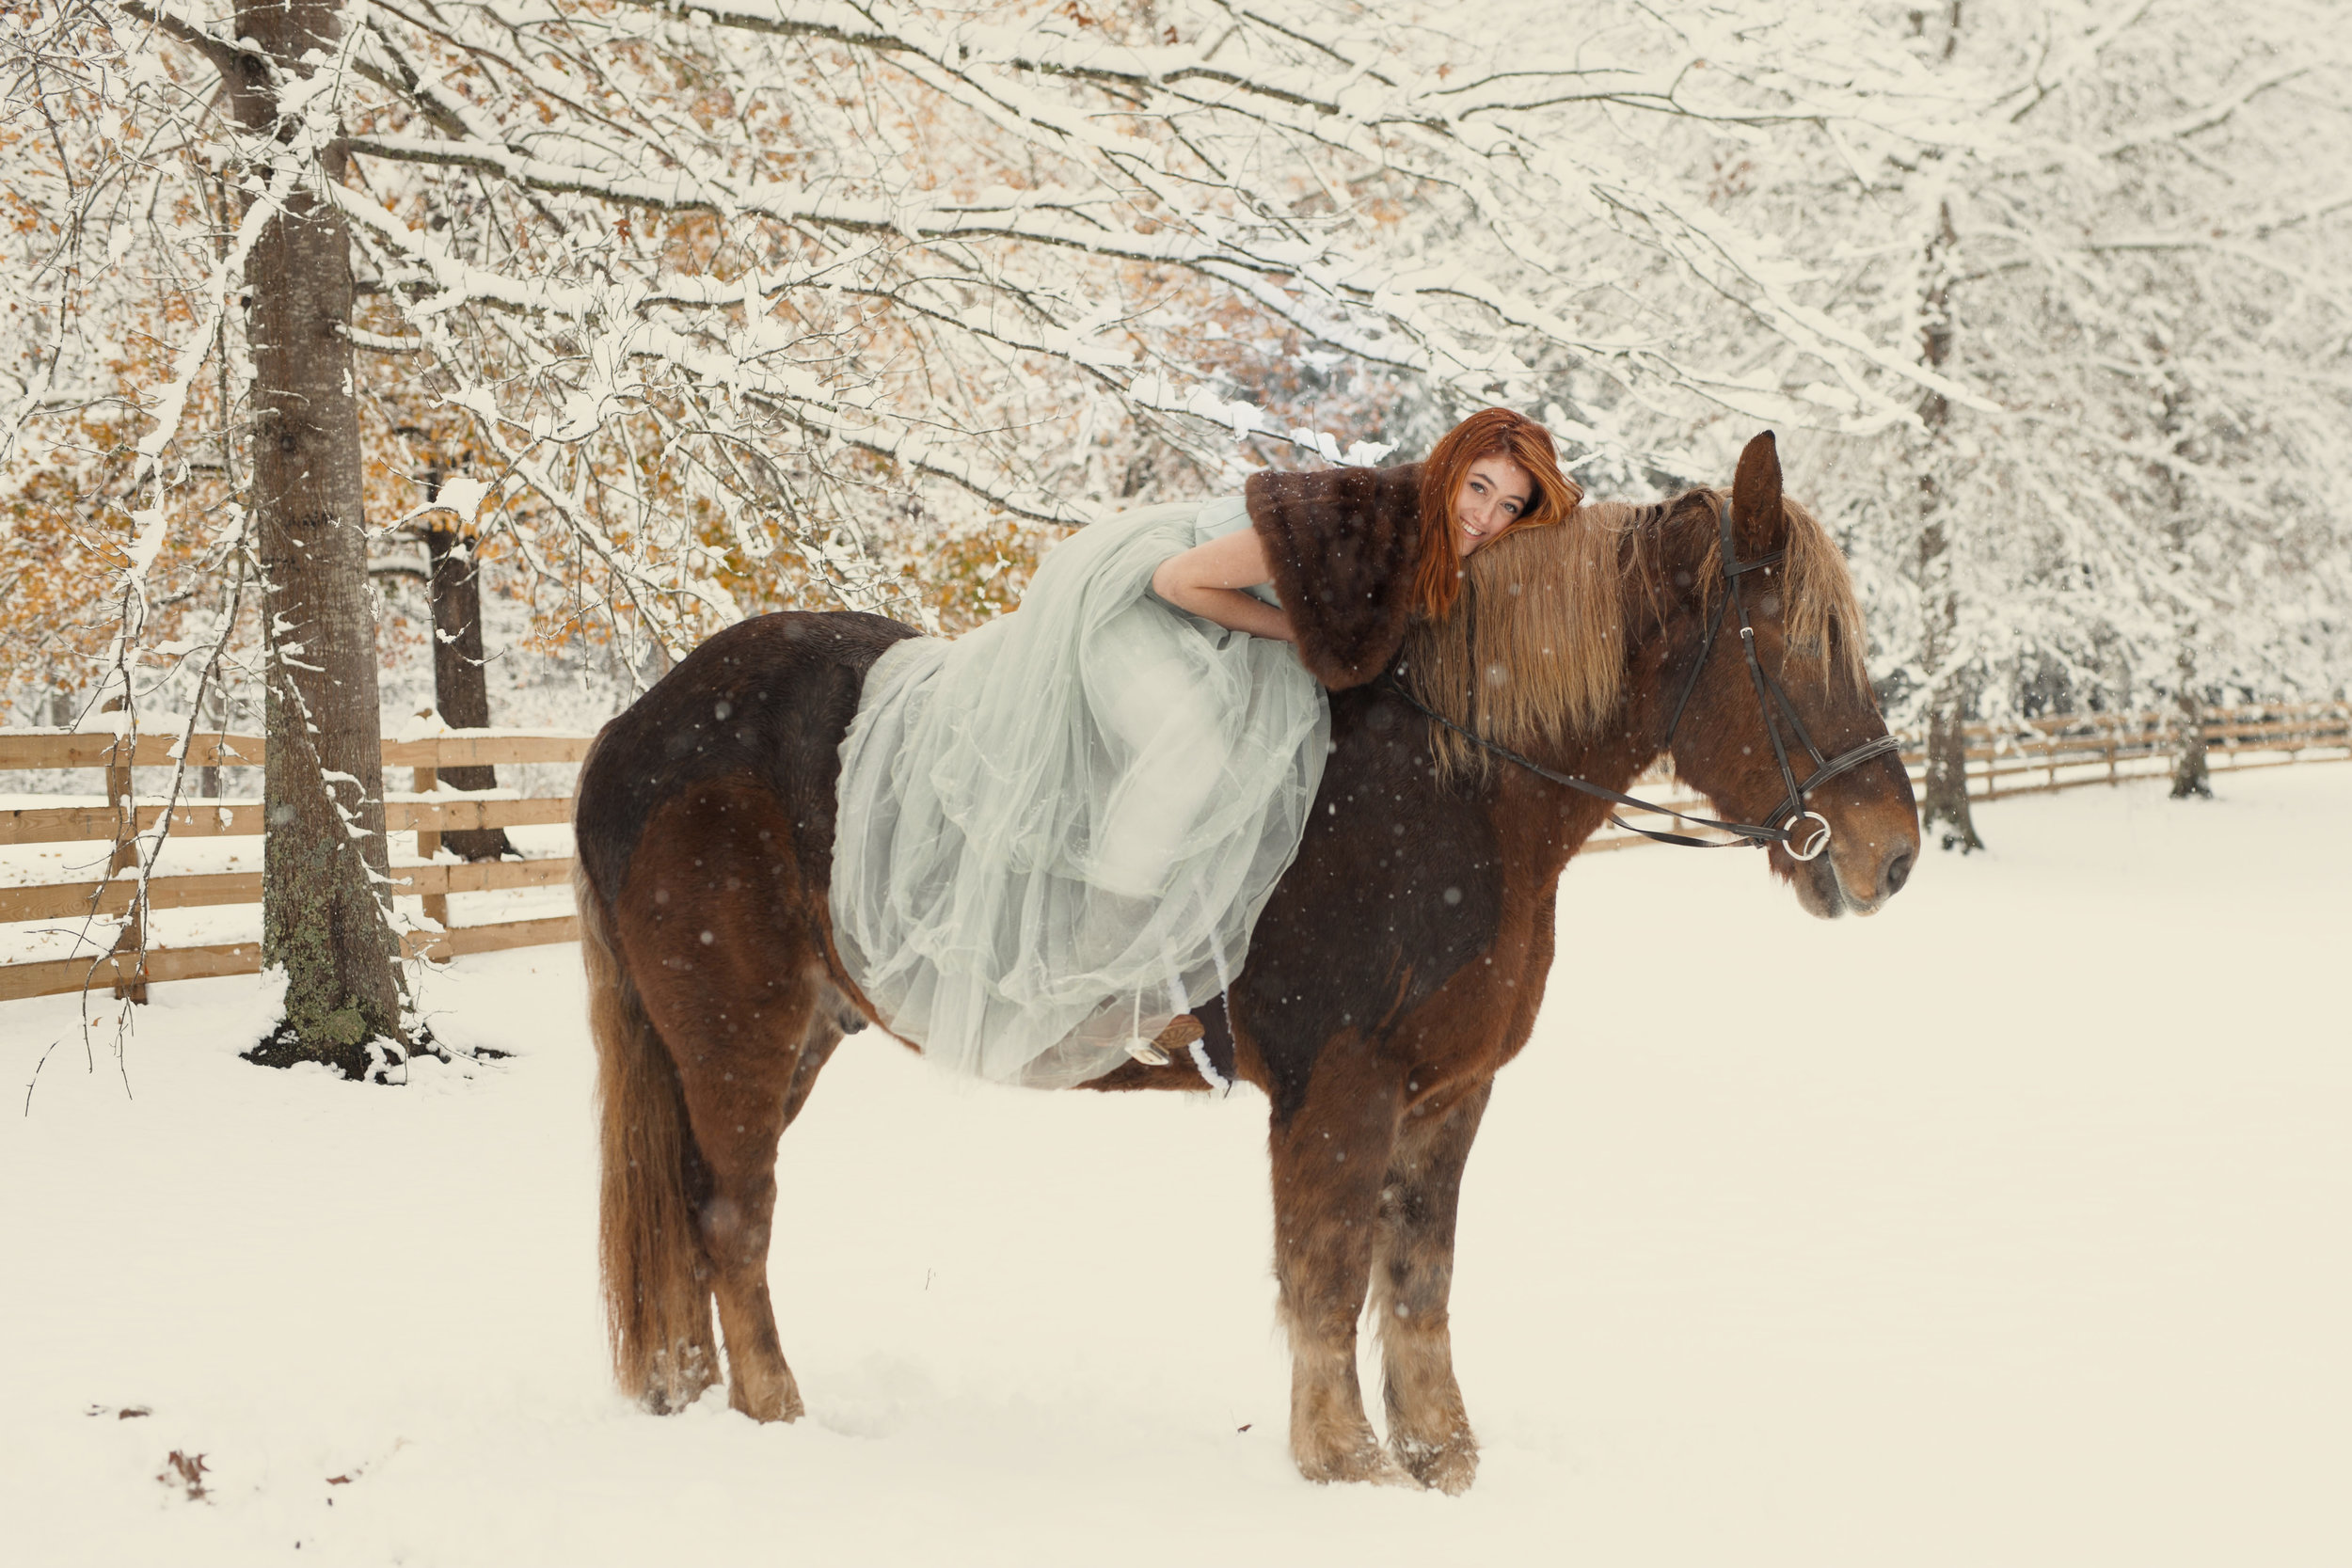 a girl and her horse - girls with horses - photo shoot - equestrian life